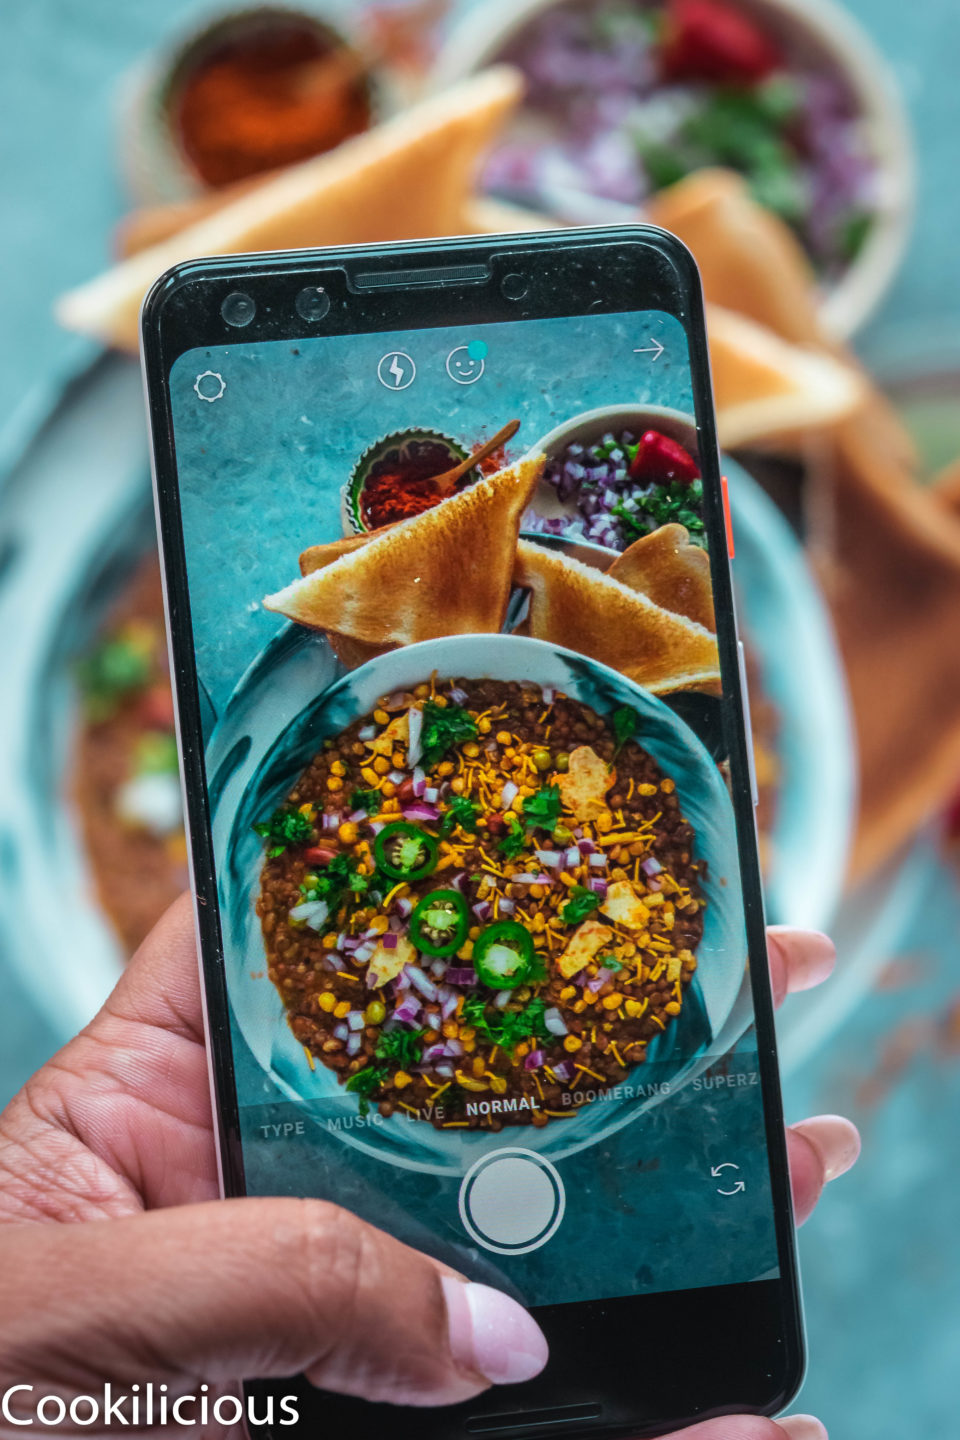 a phone clicking an image of a bowl full of Vegan Matki Misal